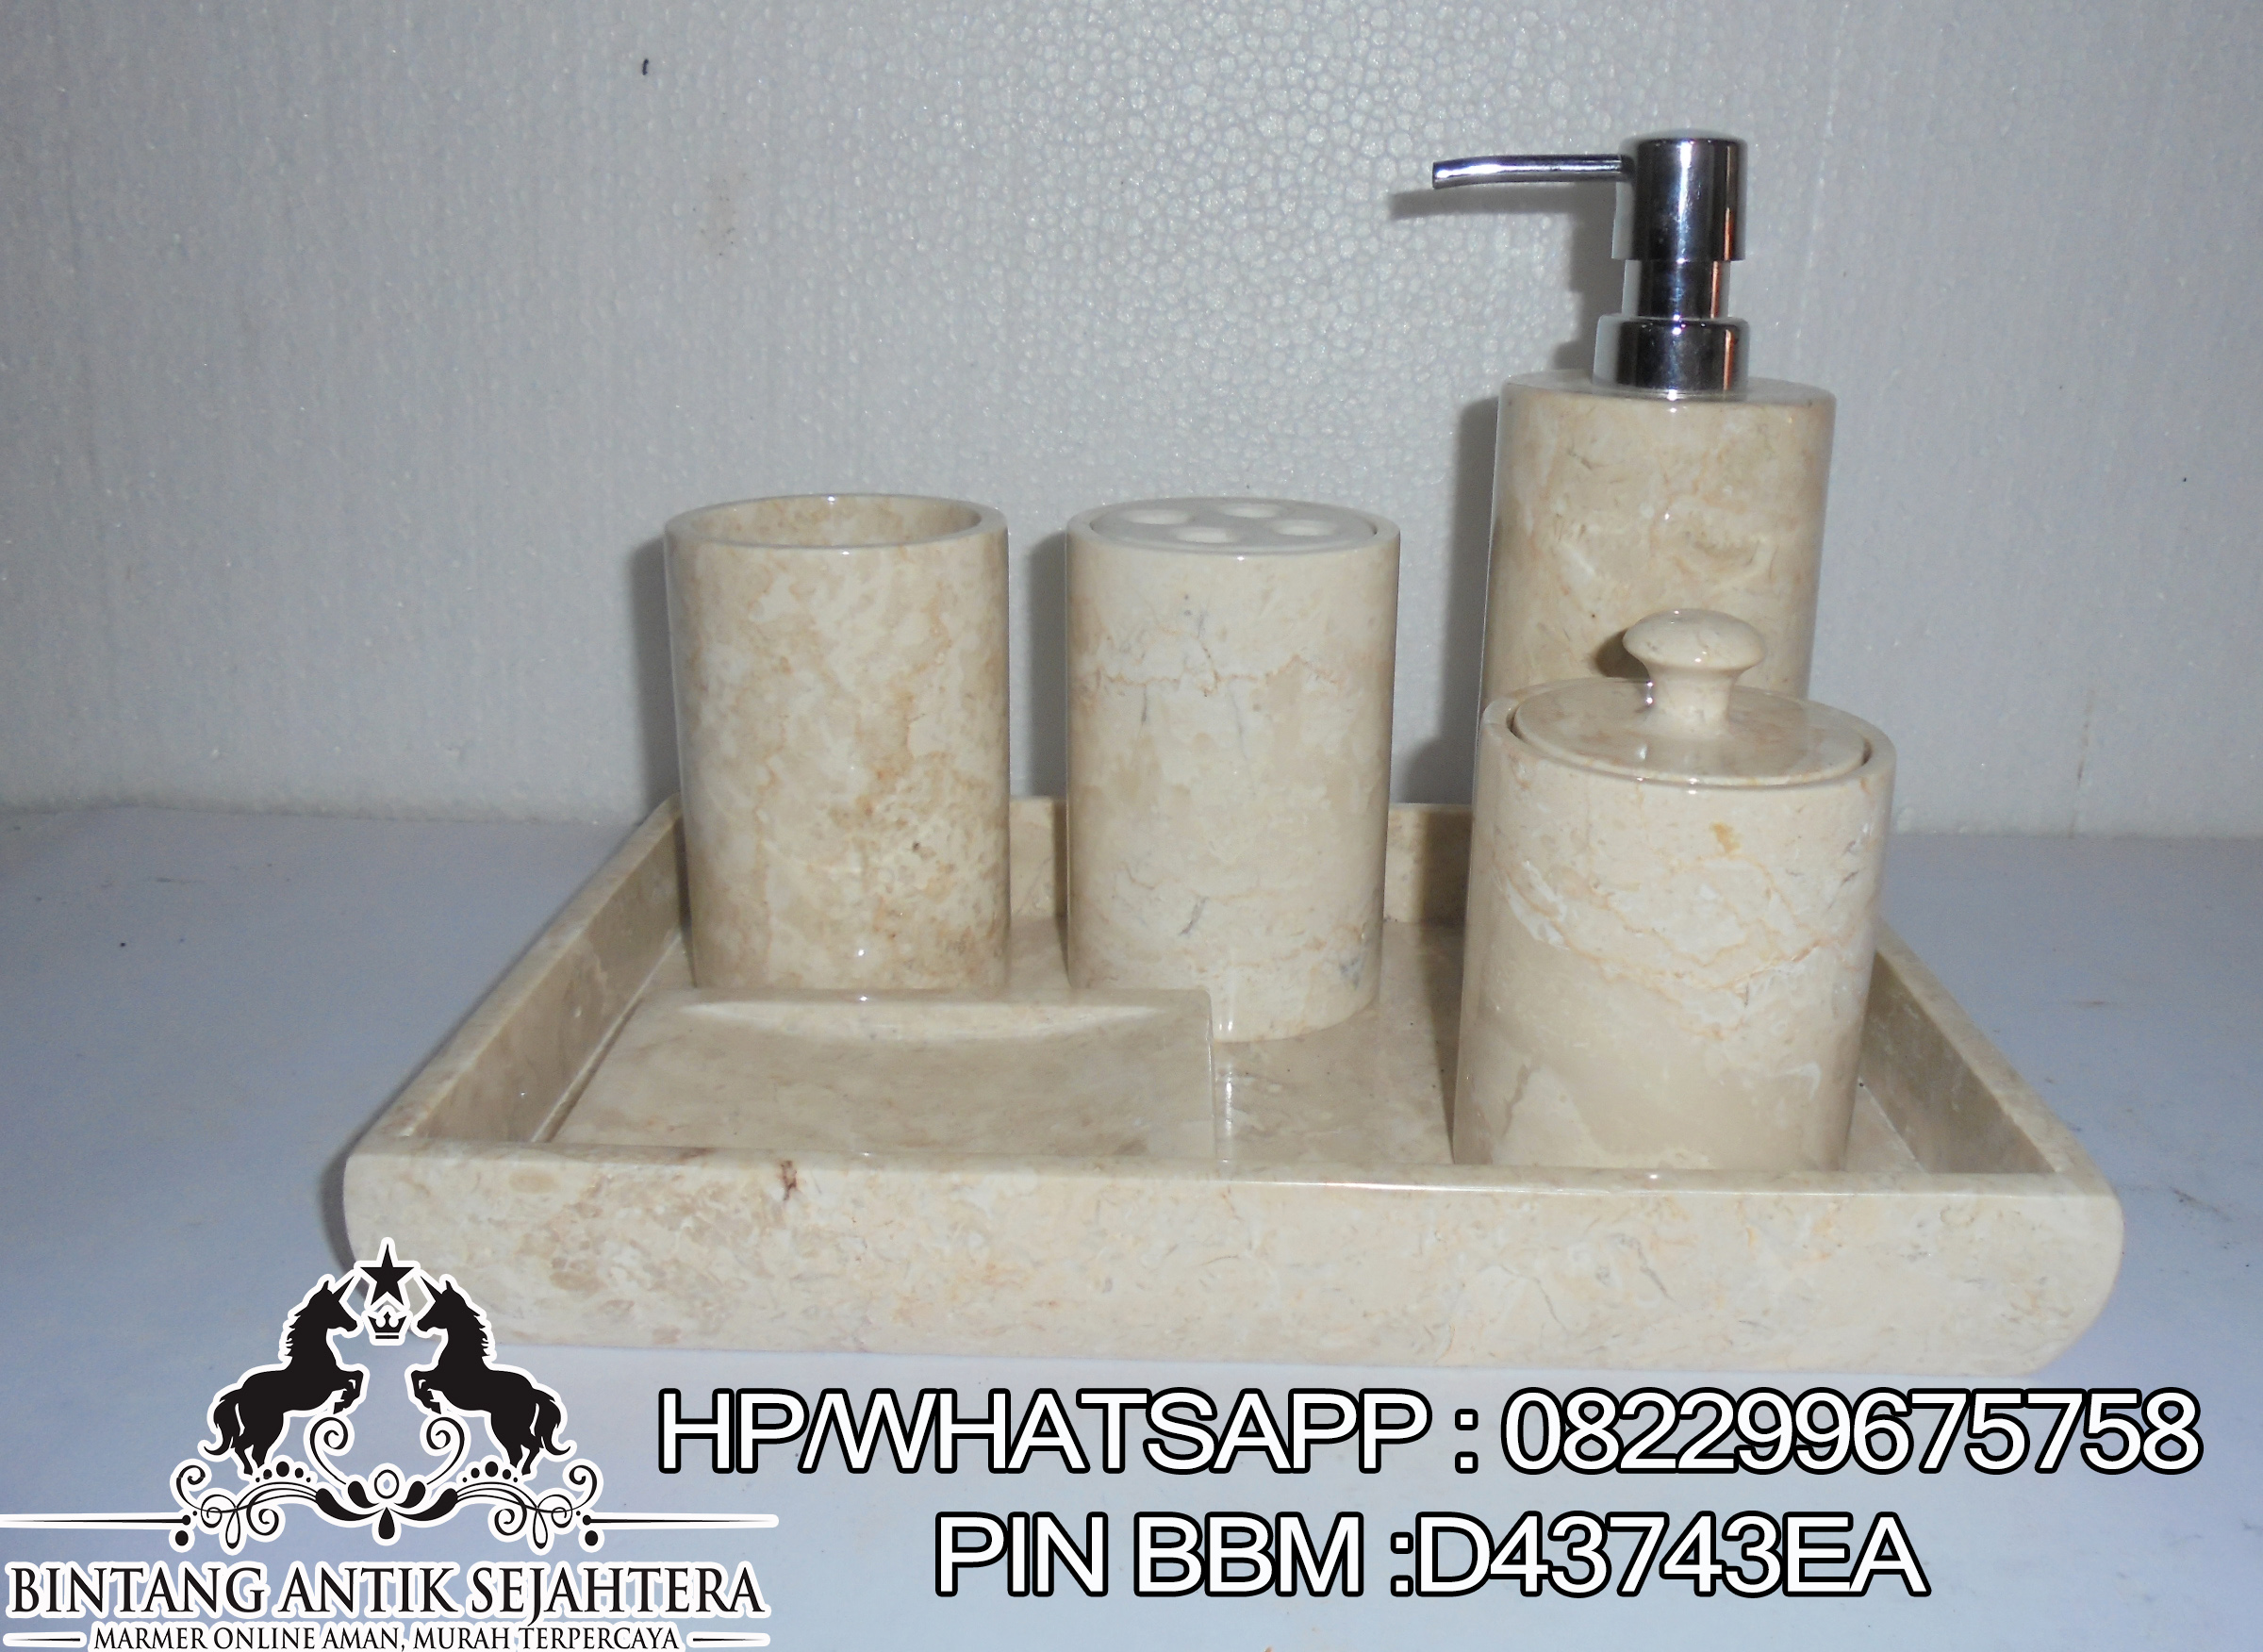 Bathroomset Marmer Murah